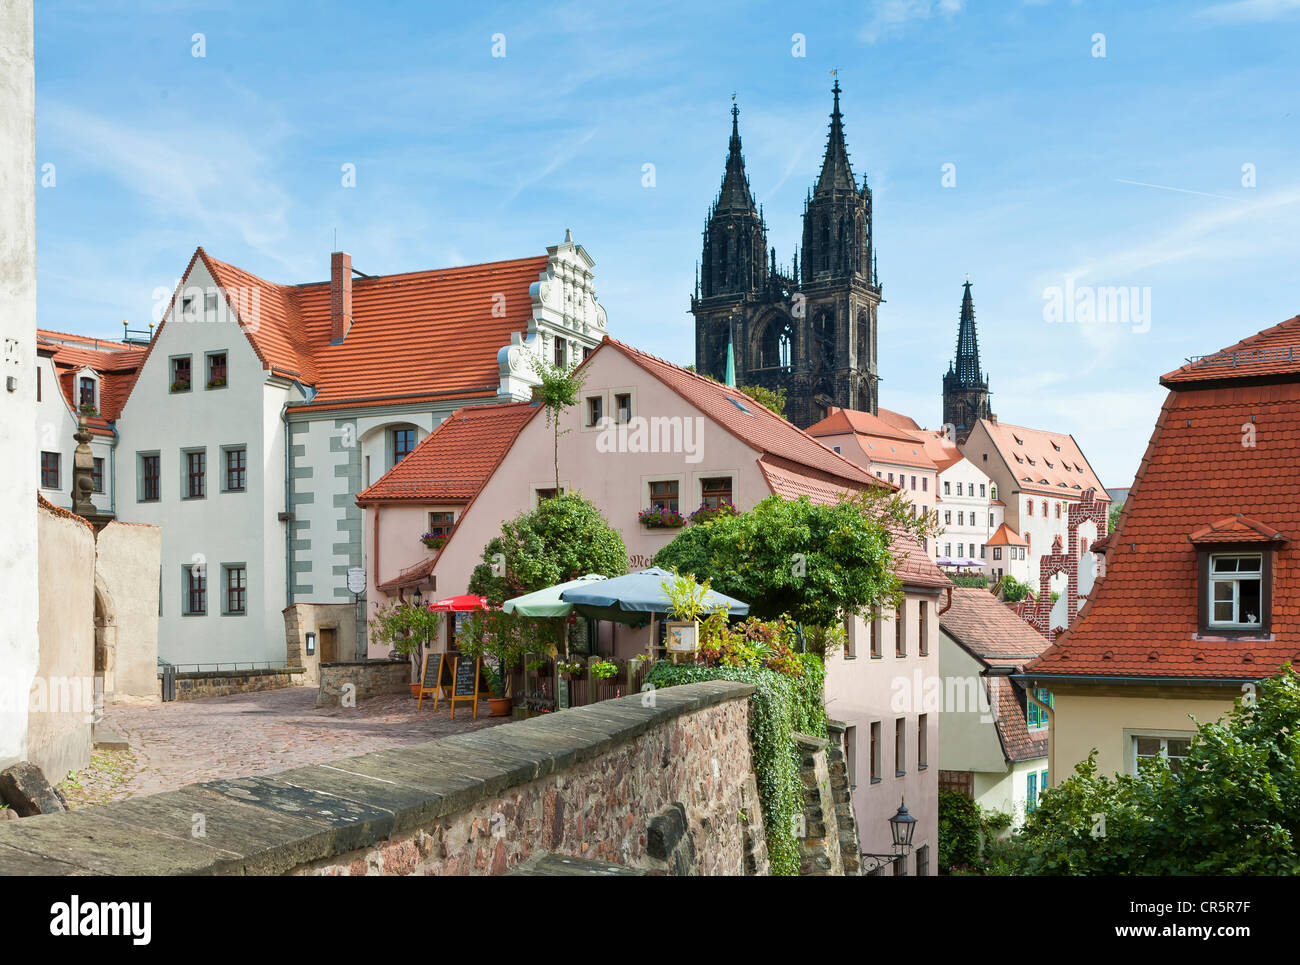 View of Albrechtsburg castle with spires, 'Rote Stufen' staircase into the old town of Meissen, Saxony, - Stock Image